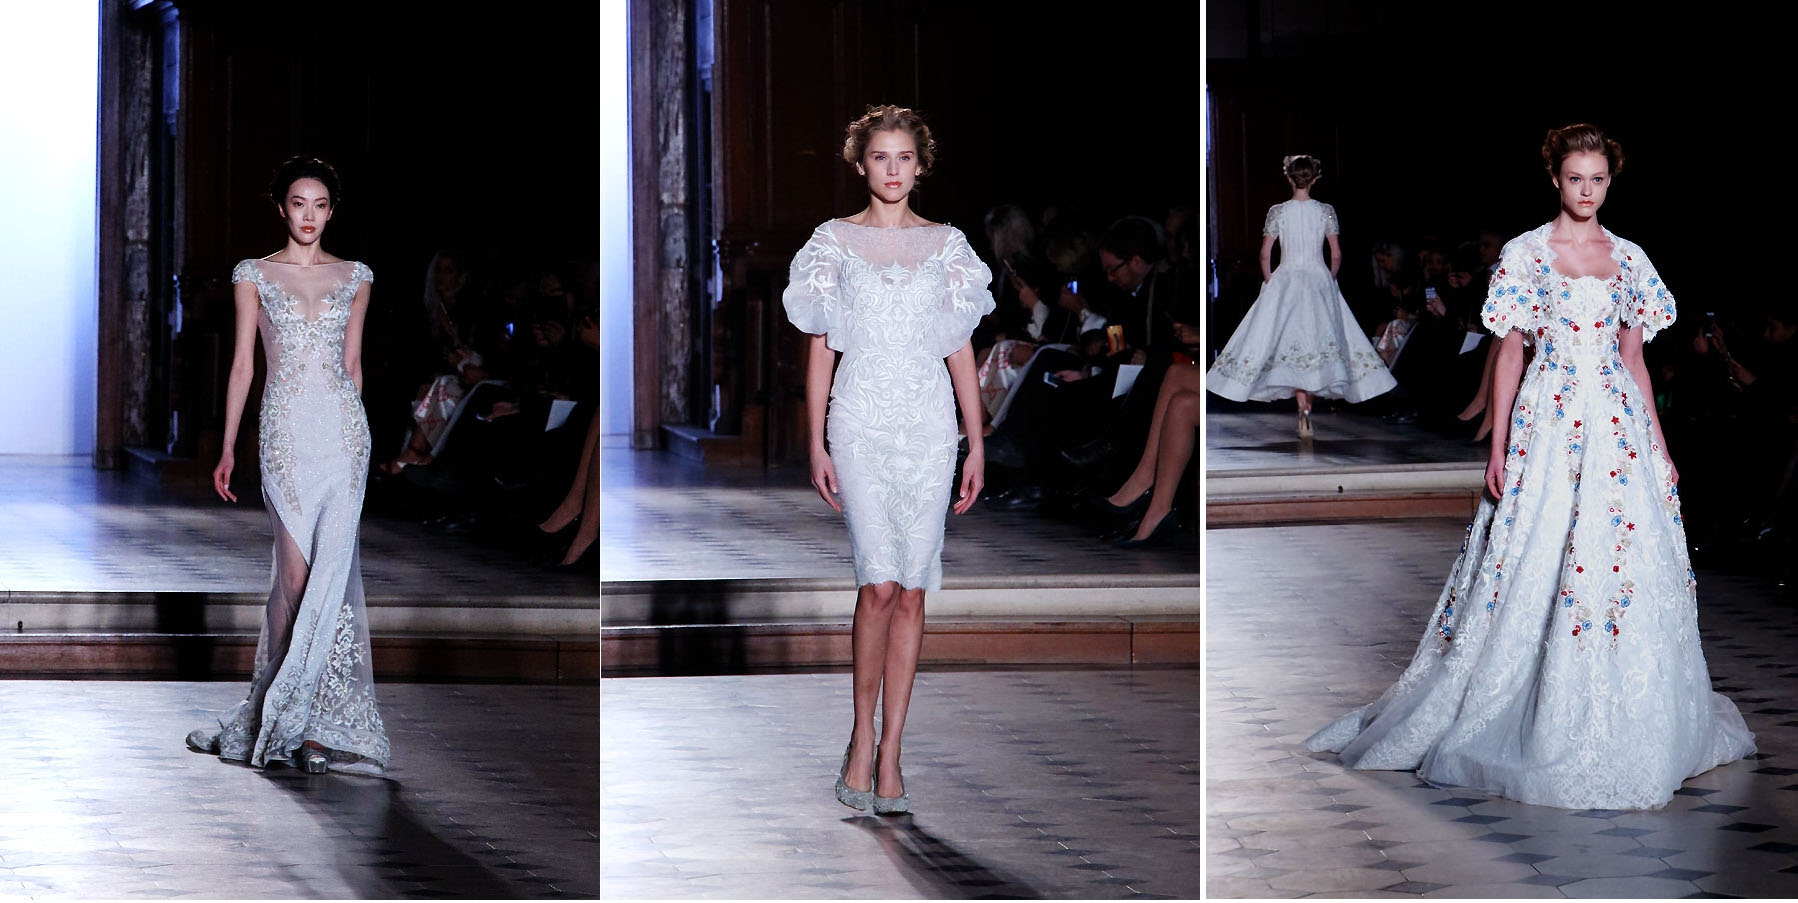 Tony WARD fashion show - pfw mo - fashionsnap | ello